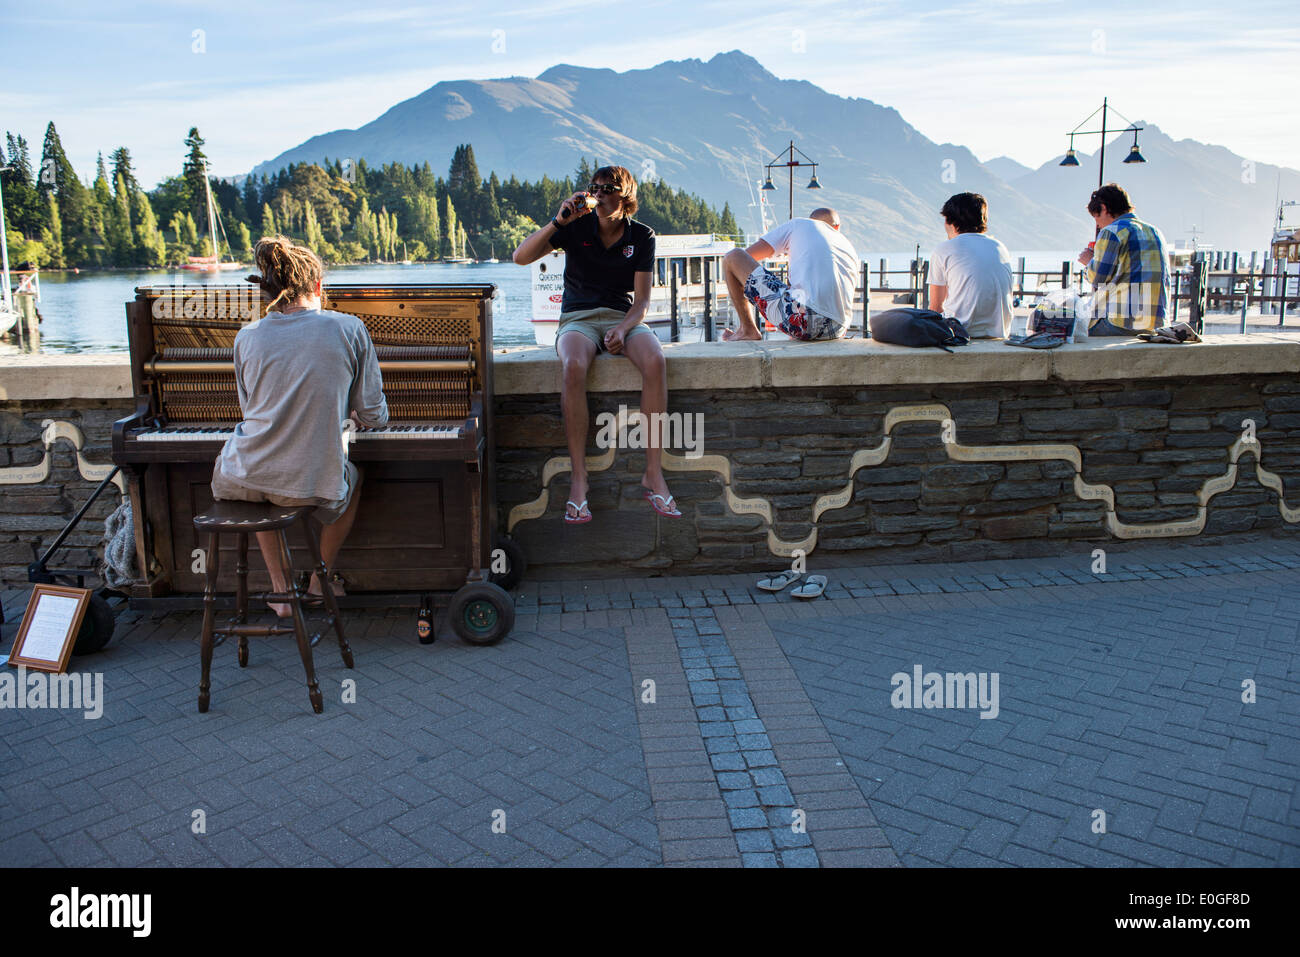 Mathias Piano Man playing to the crowd on a warm summer evening in Queenstown, New Zealand - Stock Image